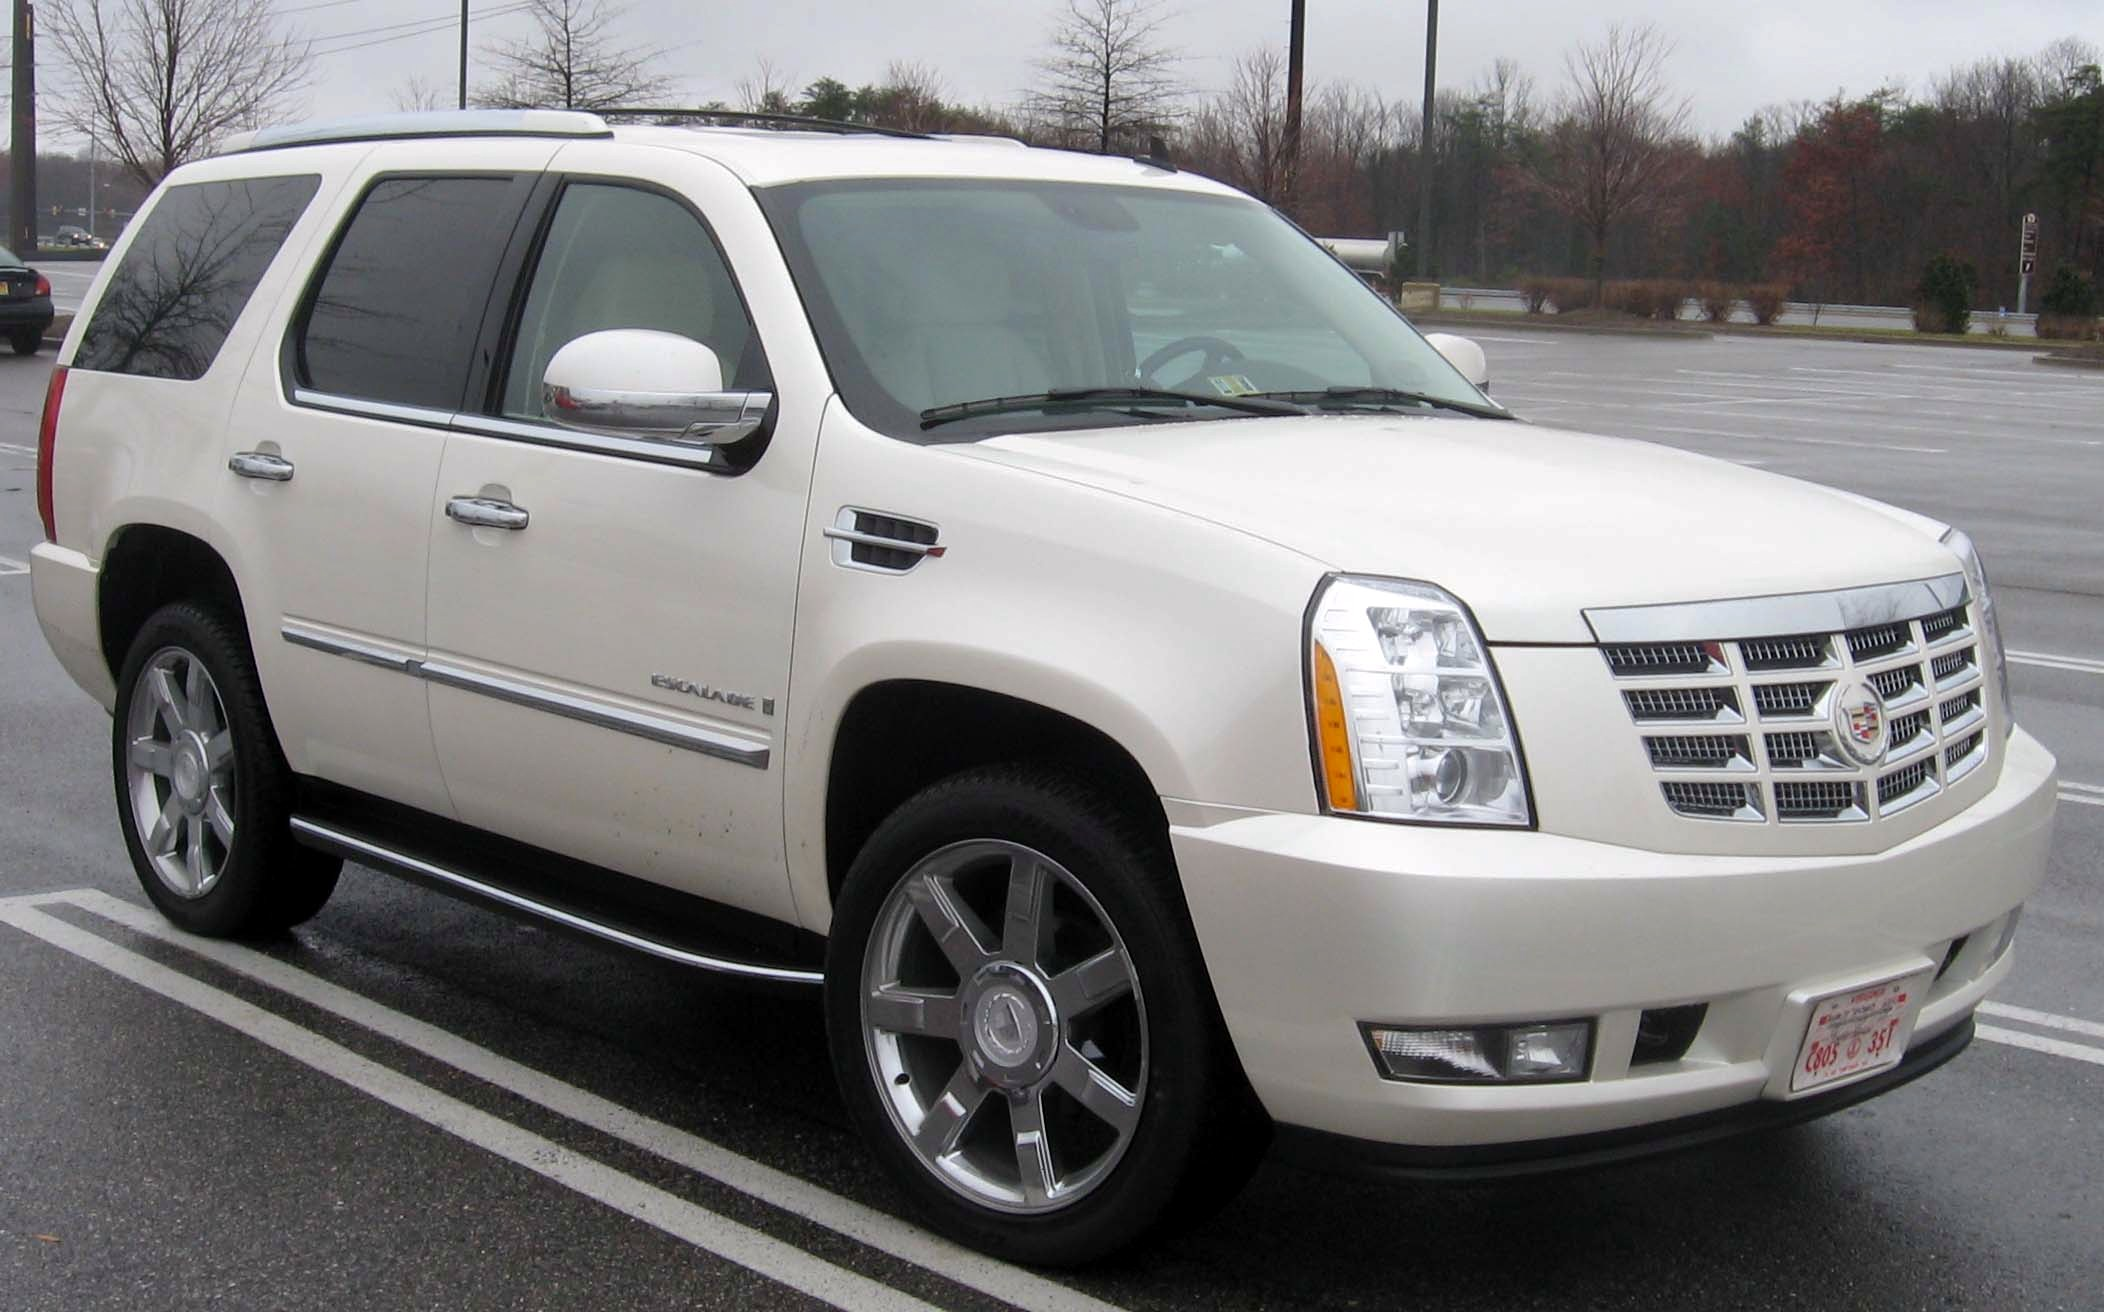 Escalade car - Color: White  // Description: big